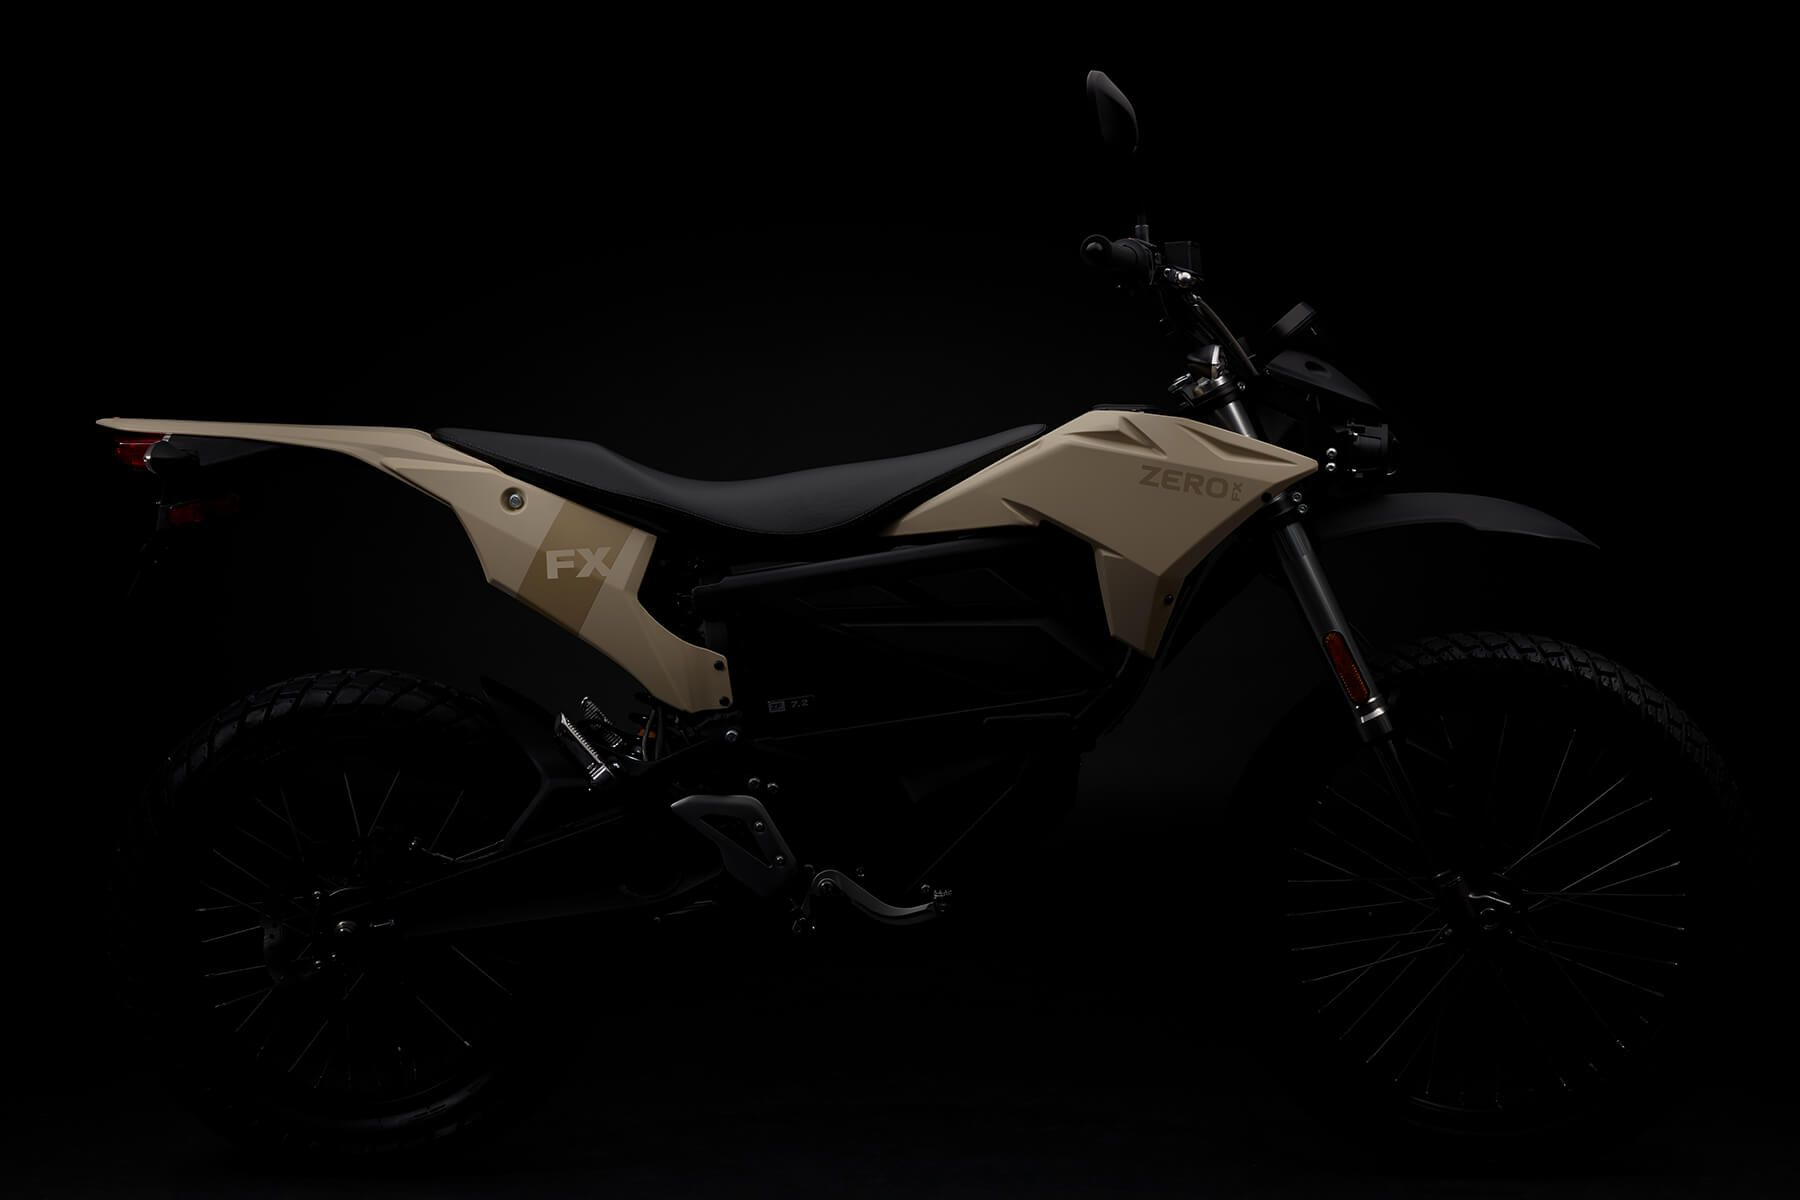 Zero Fx Electric Motorcycle Zero Motorcycles In 2020 With